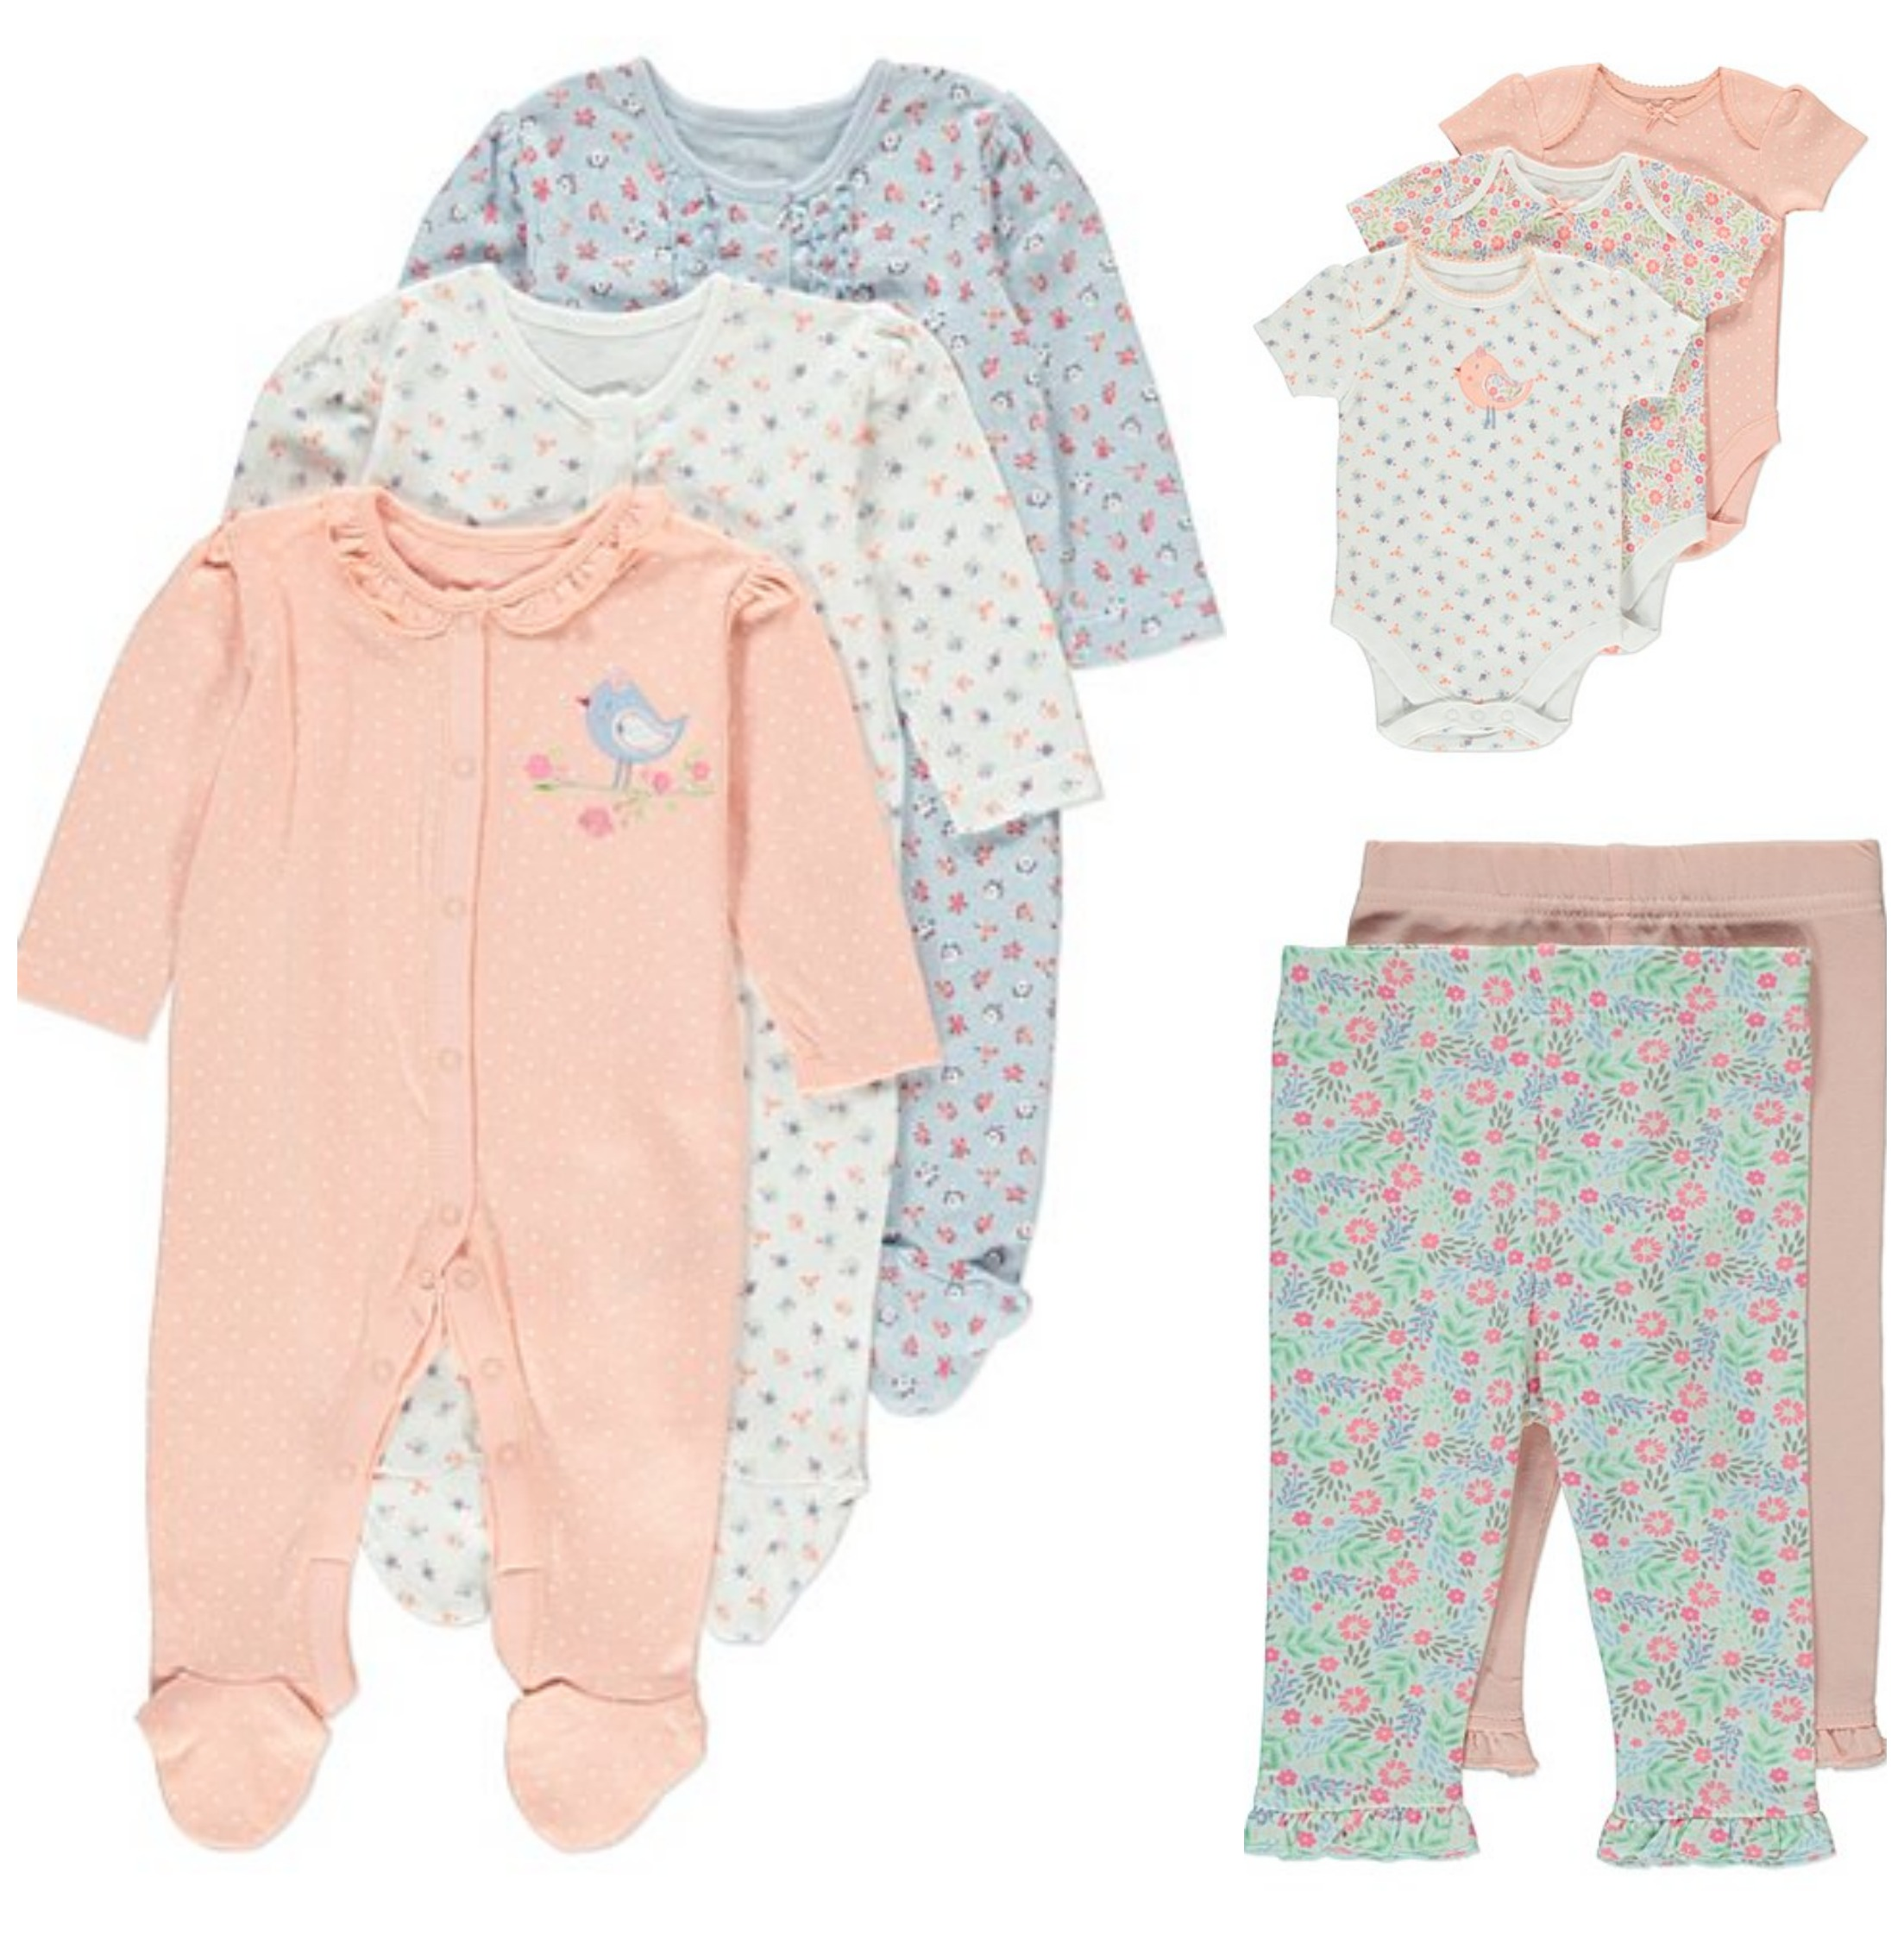 a4f7fc868 Shopping for baby number 2 with George at Asda - Lamb   Bear